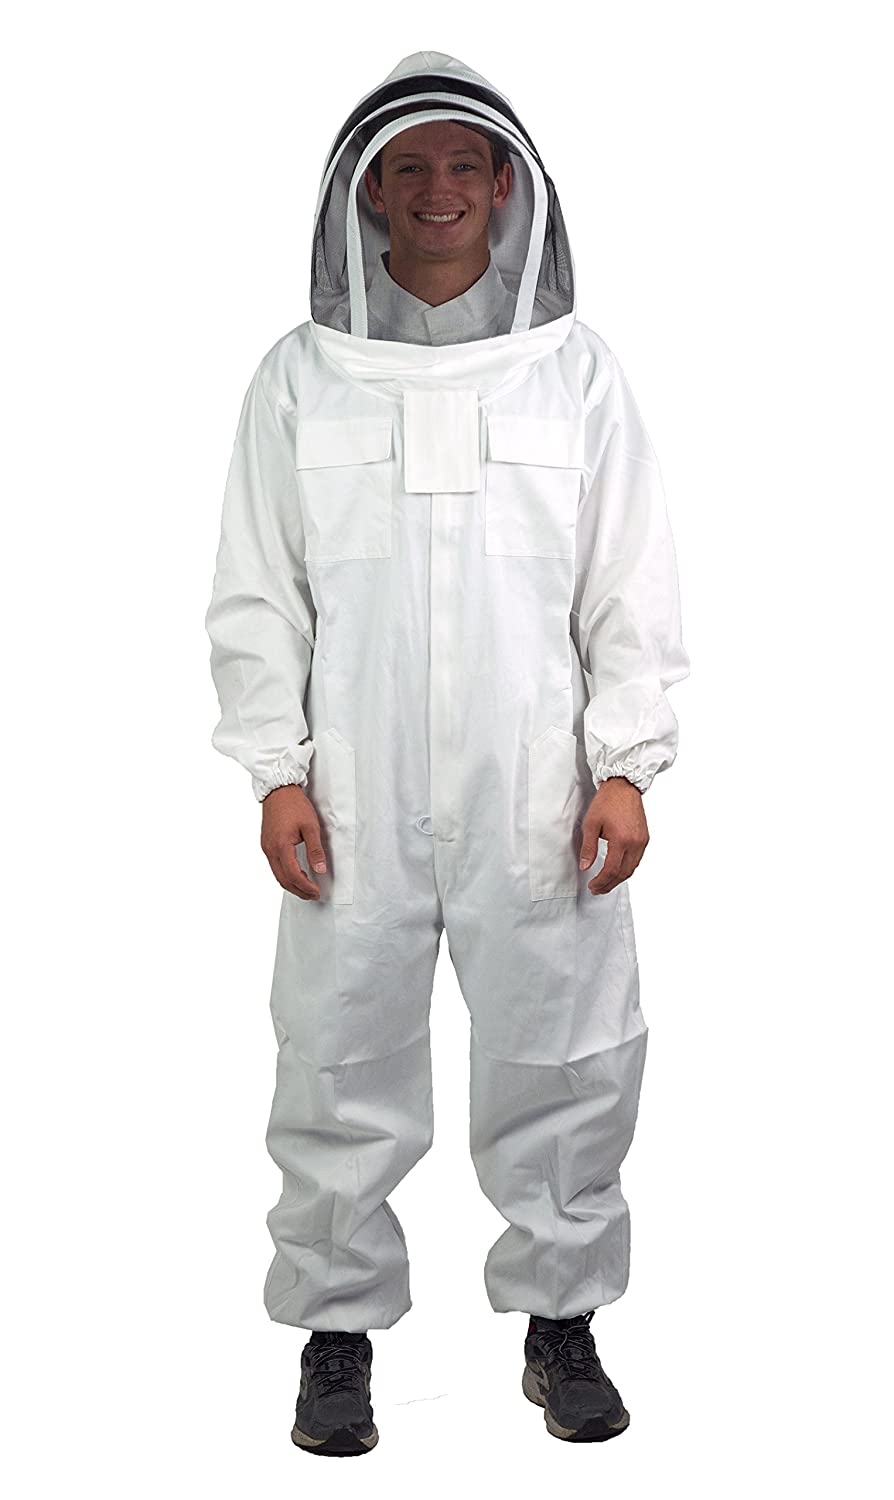 VIVO Professional Large Cotton Full Body Beekeeping Bee Keeping Suit, with Veil Hood (BEE-V106)